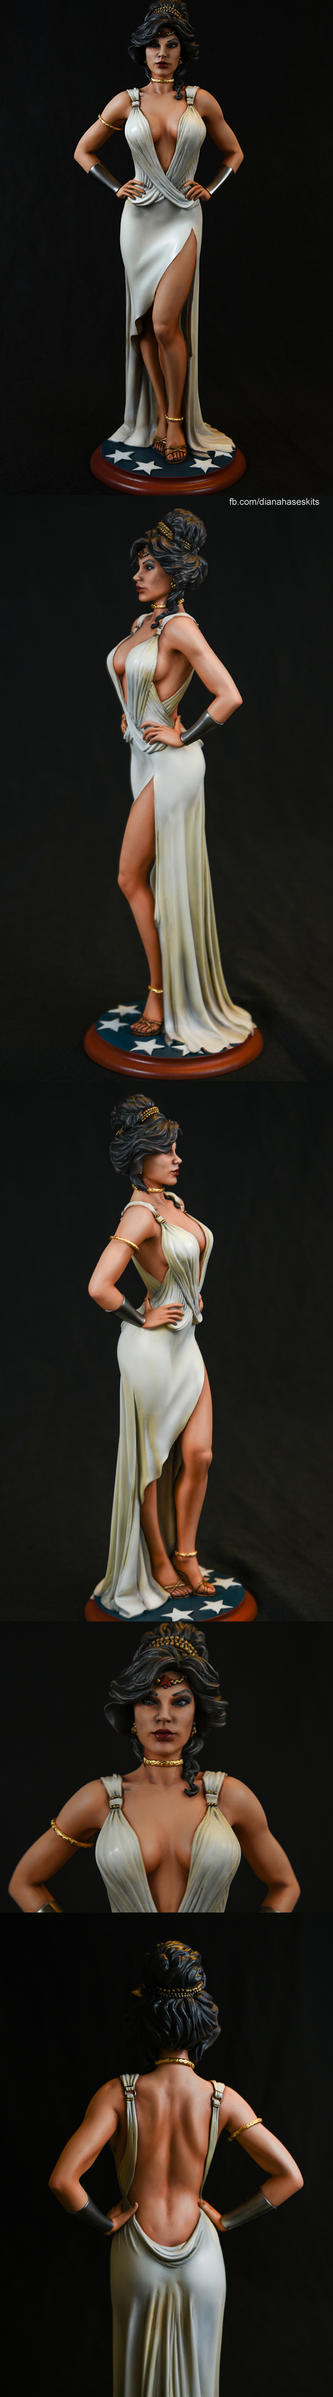 Wonder Woman in Gown 2 by dianahase by dianahase